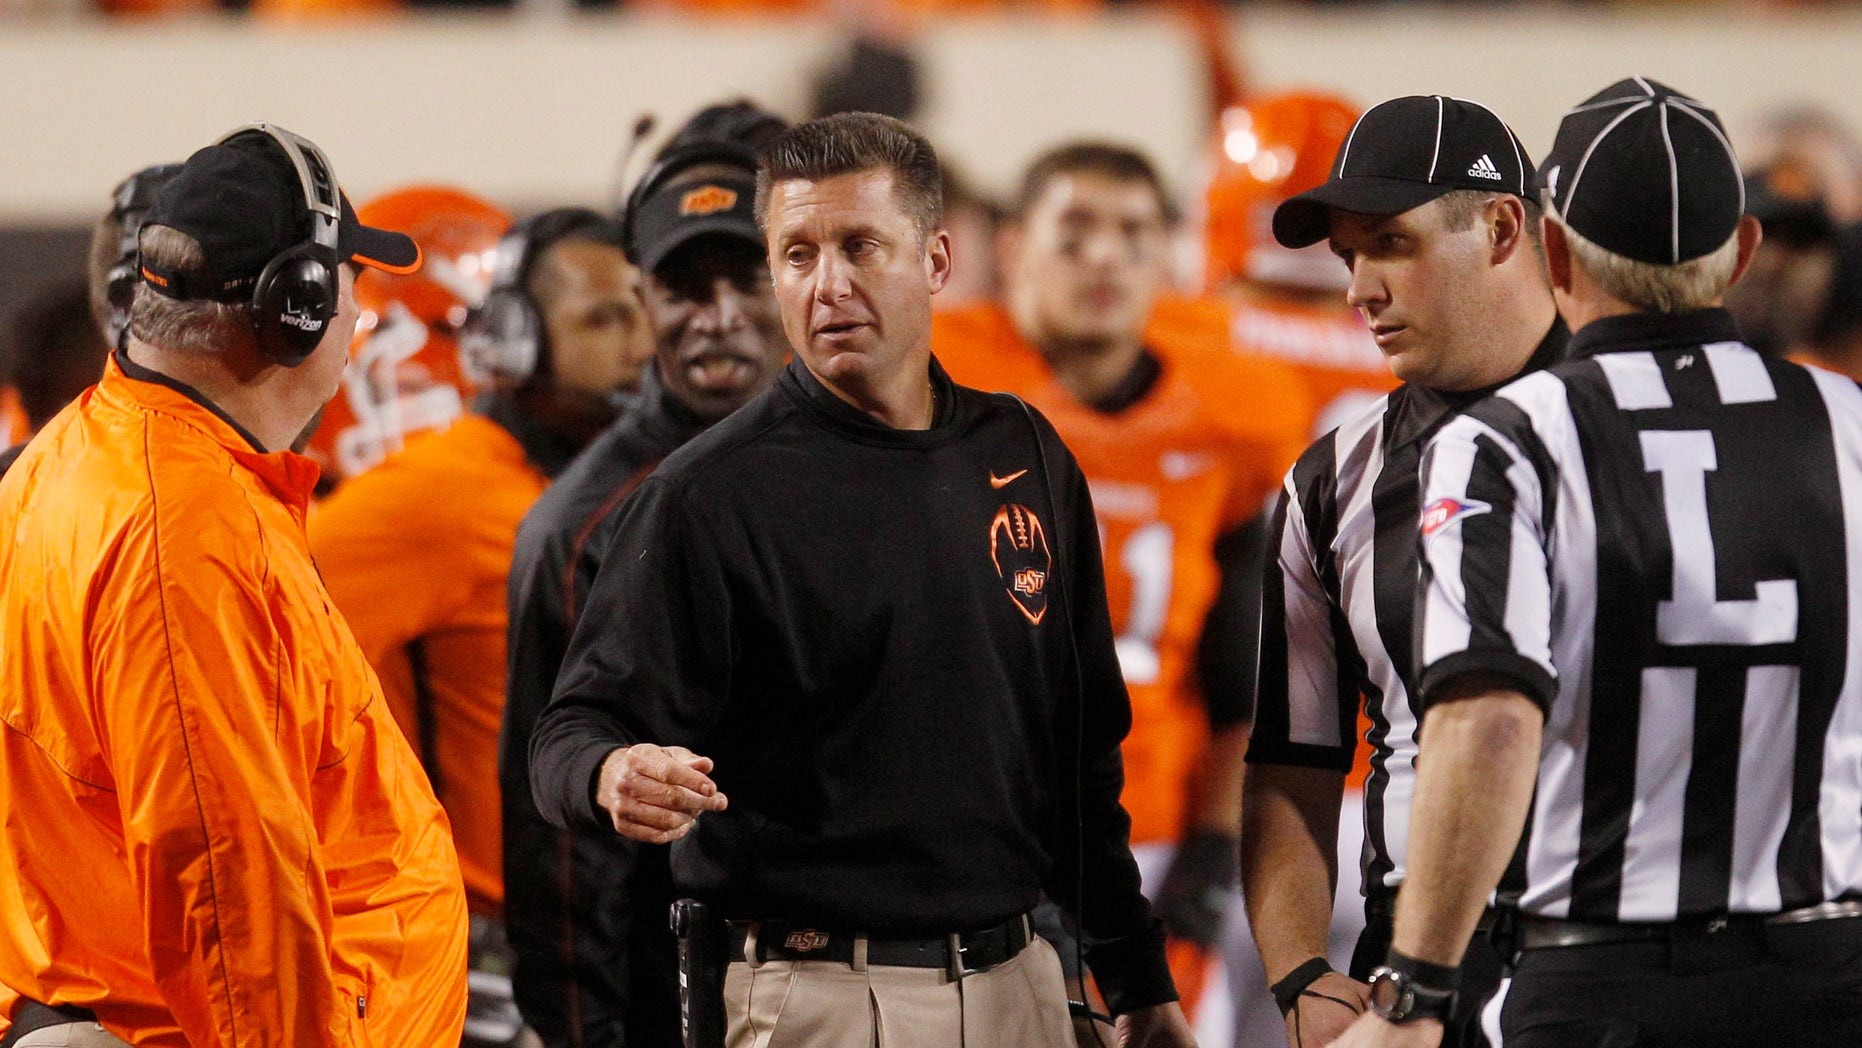 FILE - Oklahoma State head coach Mike Gundy, center, talks with defensive coordinator Bill Young, left, and officials, right, during the fourth quarter of an NCAA college football game against Texas Tech in Stillwater, Okla., in this Nov. 17, 2012 file photo.  Defensive coordinator Bill Young _ a coaching veteran of 45 years _ has said he doesn't know how much longer he plans to coach, although he talked Thursday Dec. 20, 2012 about recruiting and next season as if he will be back.(AP Photo/Sue Ogrocki, File)